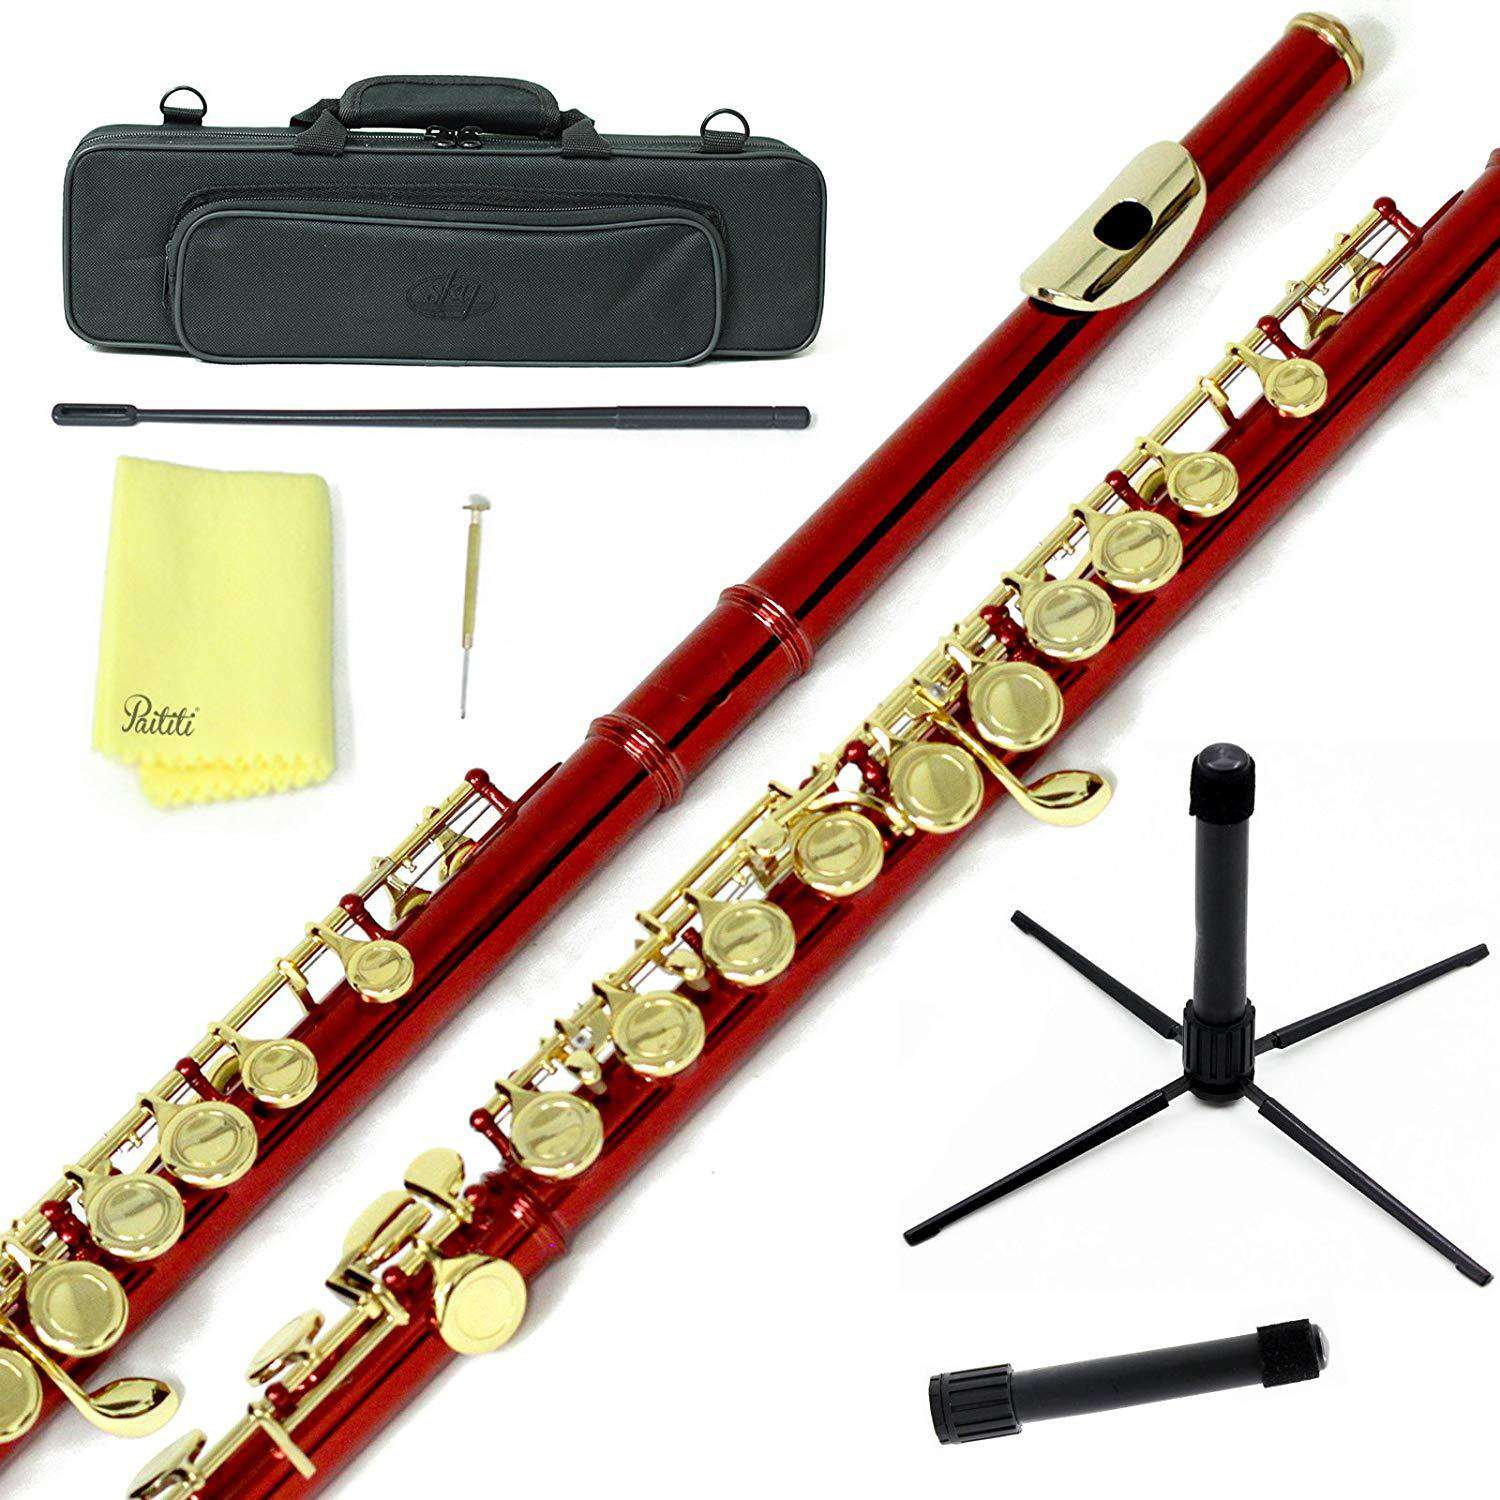 Sky Blue Lacquer Gold Keys Open Hole C Flute with 1 Year Manufacturer Warranty, Guarantee Top Quality Sound with Lightweight Case, Cleaning Rod, Cloth, Joint Grease and Screw Driver